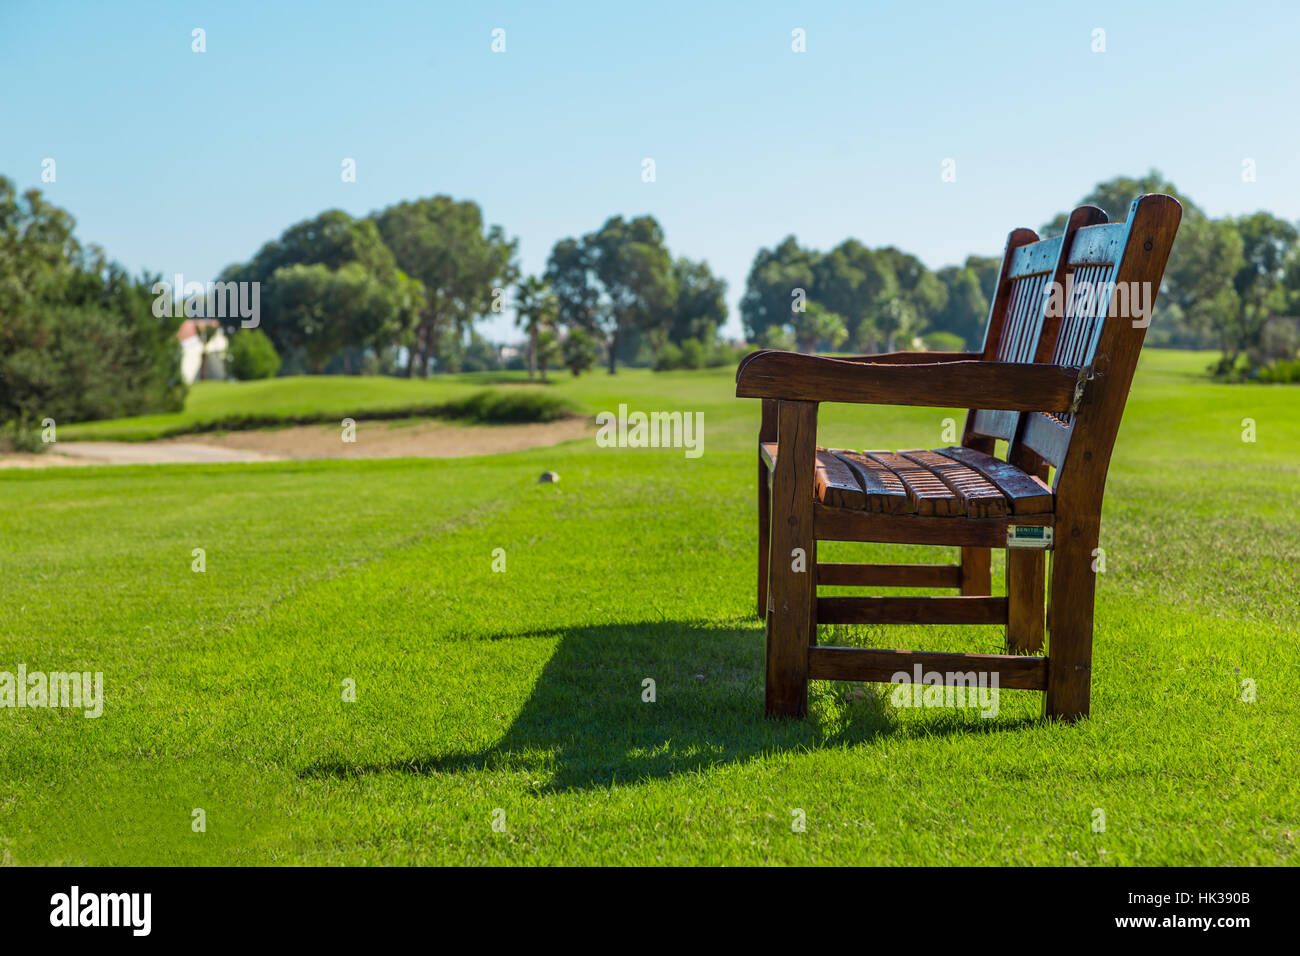 Wooden bench on a sunny day in golf courseStock Photo